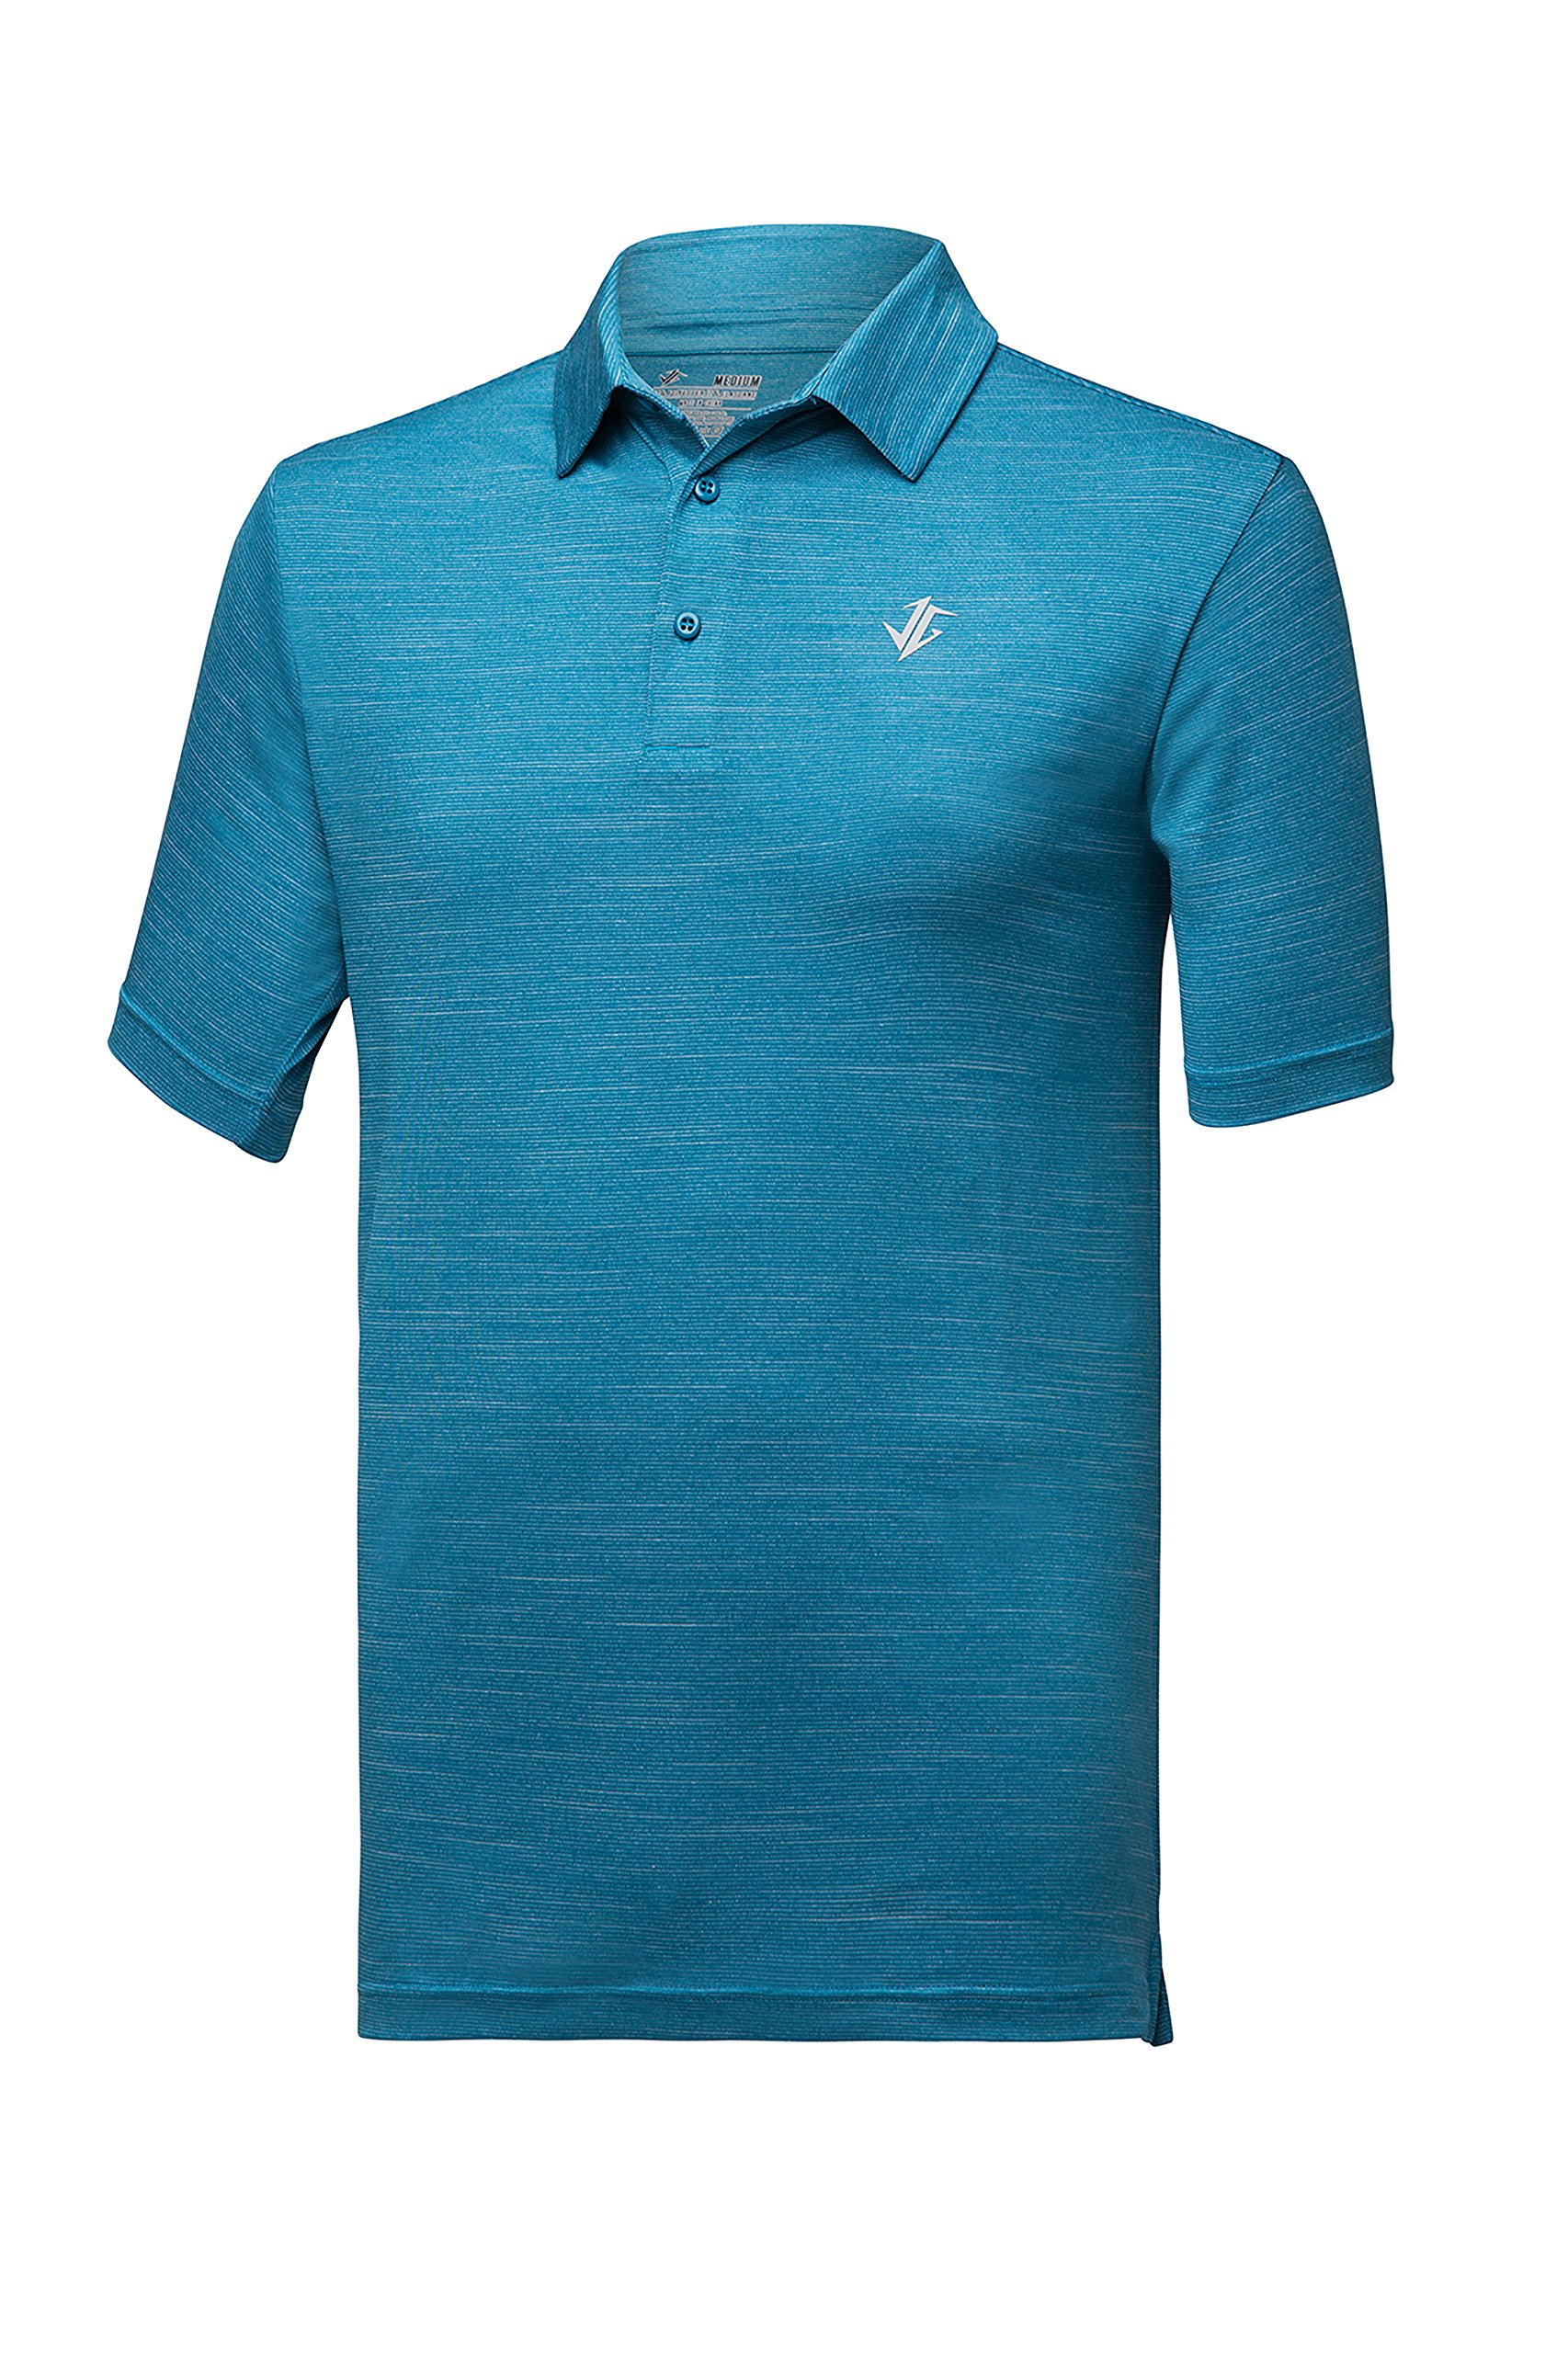 7be088f07 Get Quotations · Jolt Gear Mens Dry Fit Golf Polo Shirt, Athletic Short-Sleeve  Polo Golf Shirts